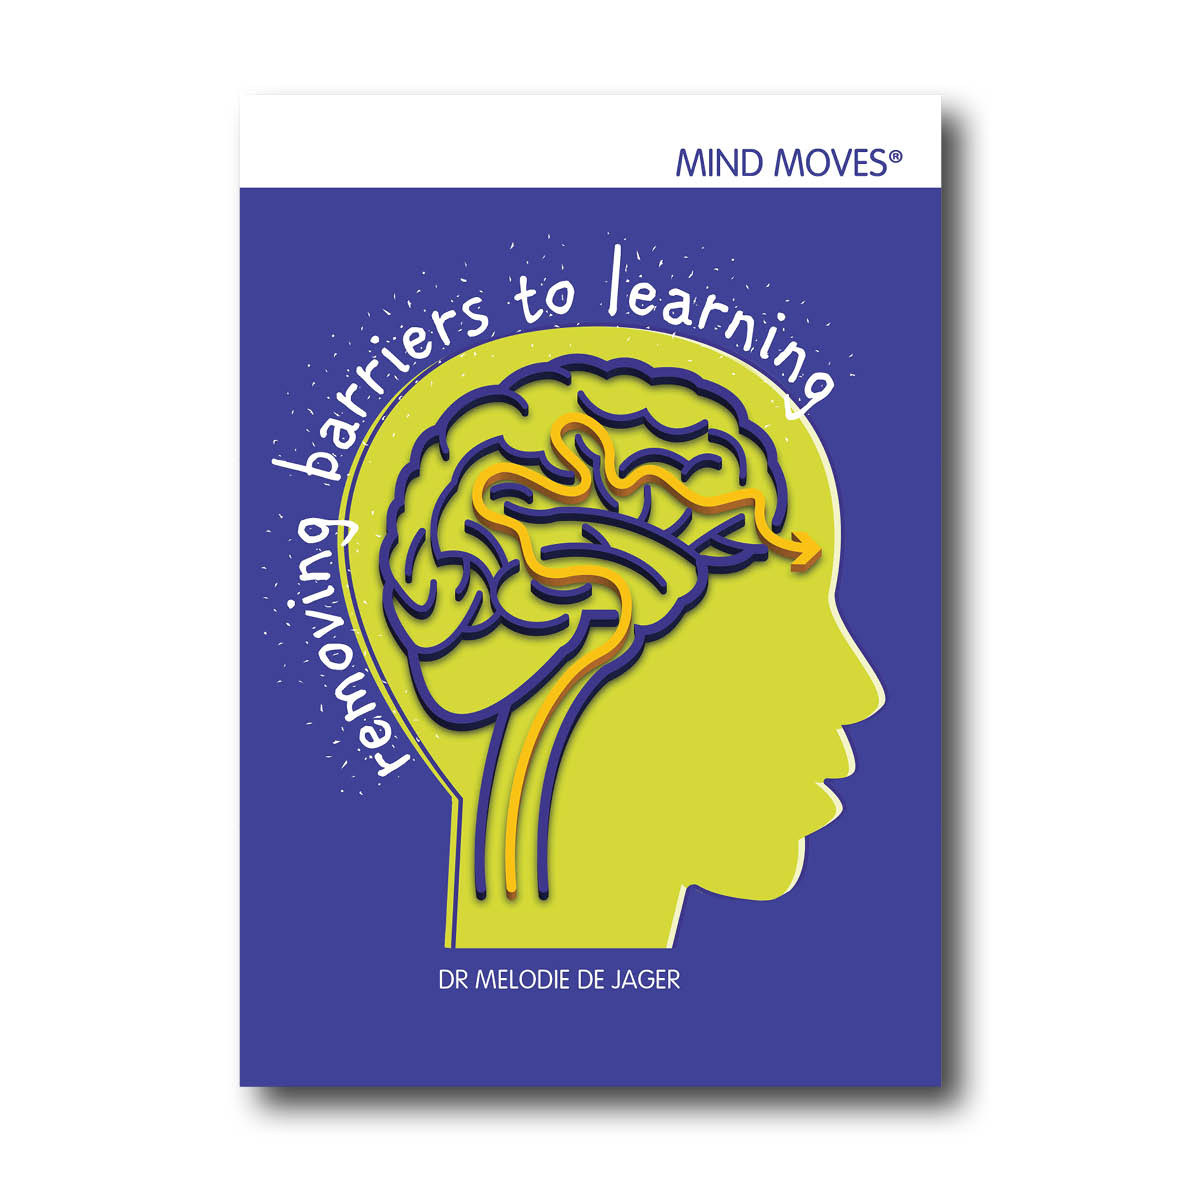 De Jager 2019 M Mind Moves Removing barriers to learning Johannesburg Mind Moves Publishing